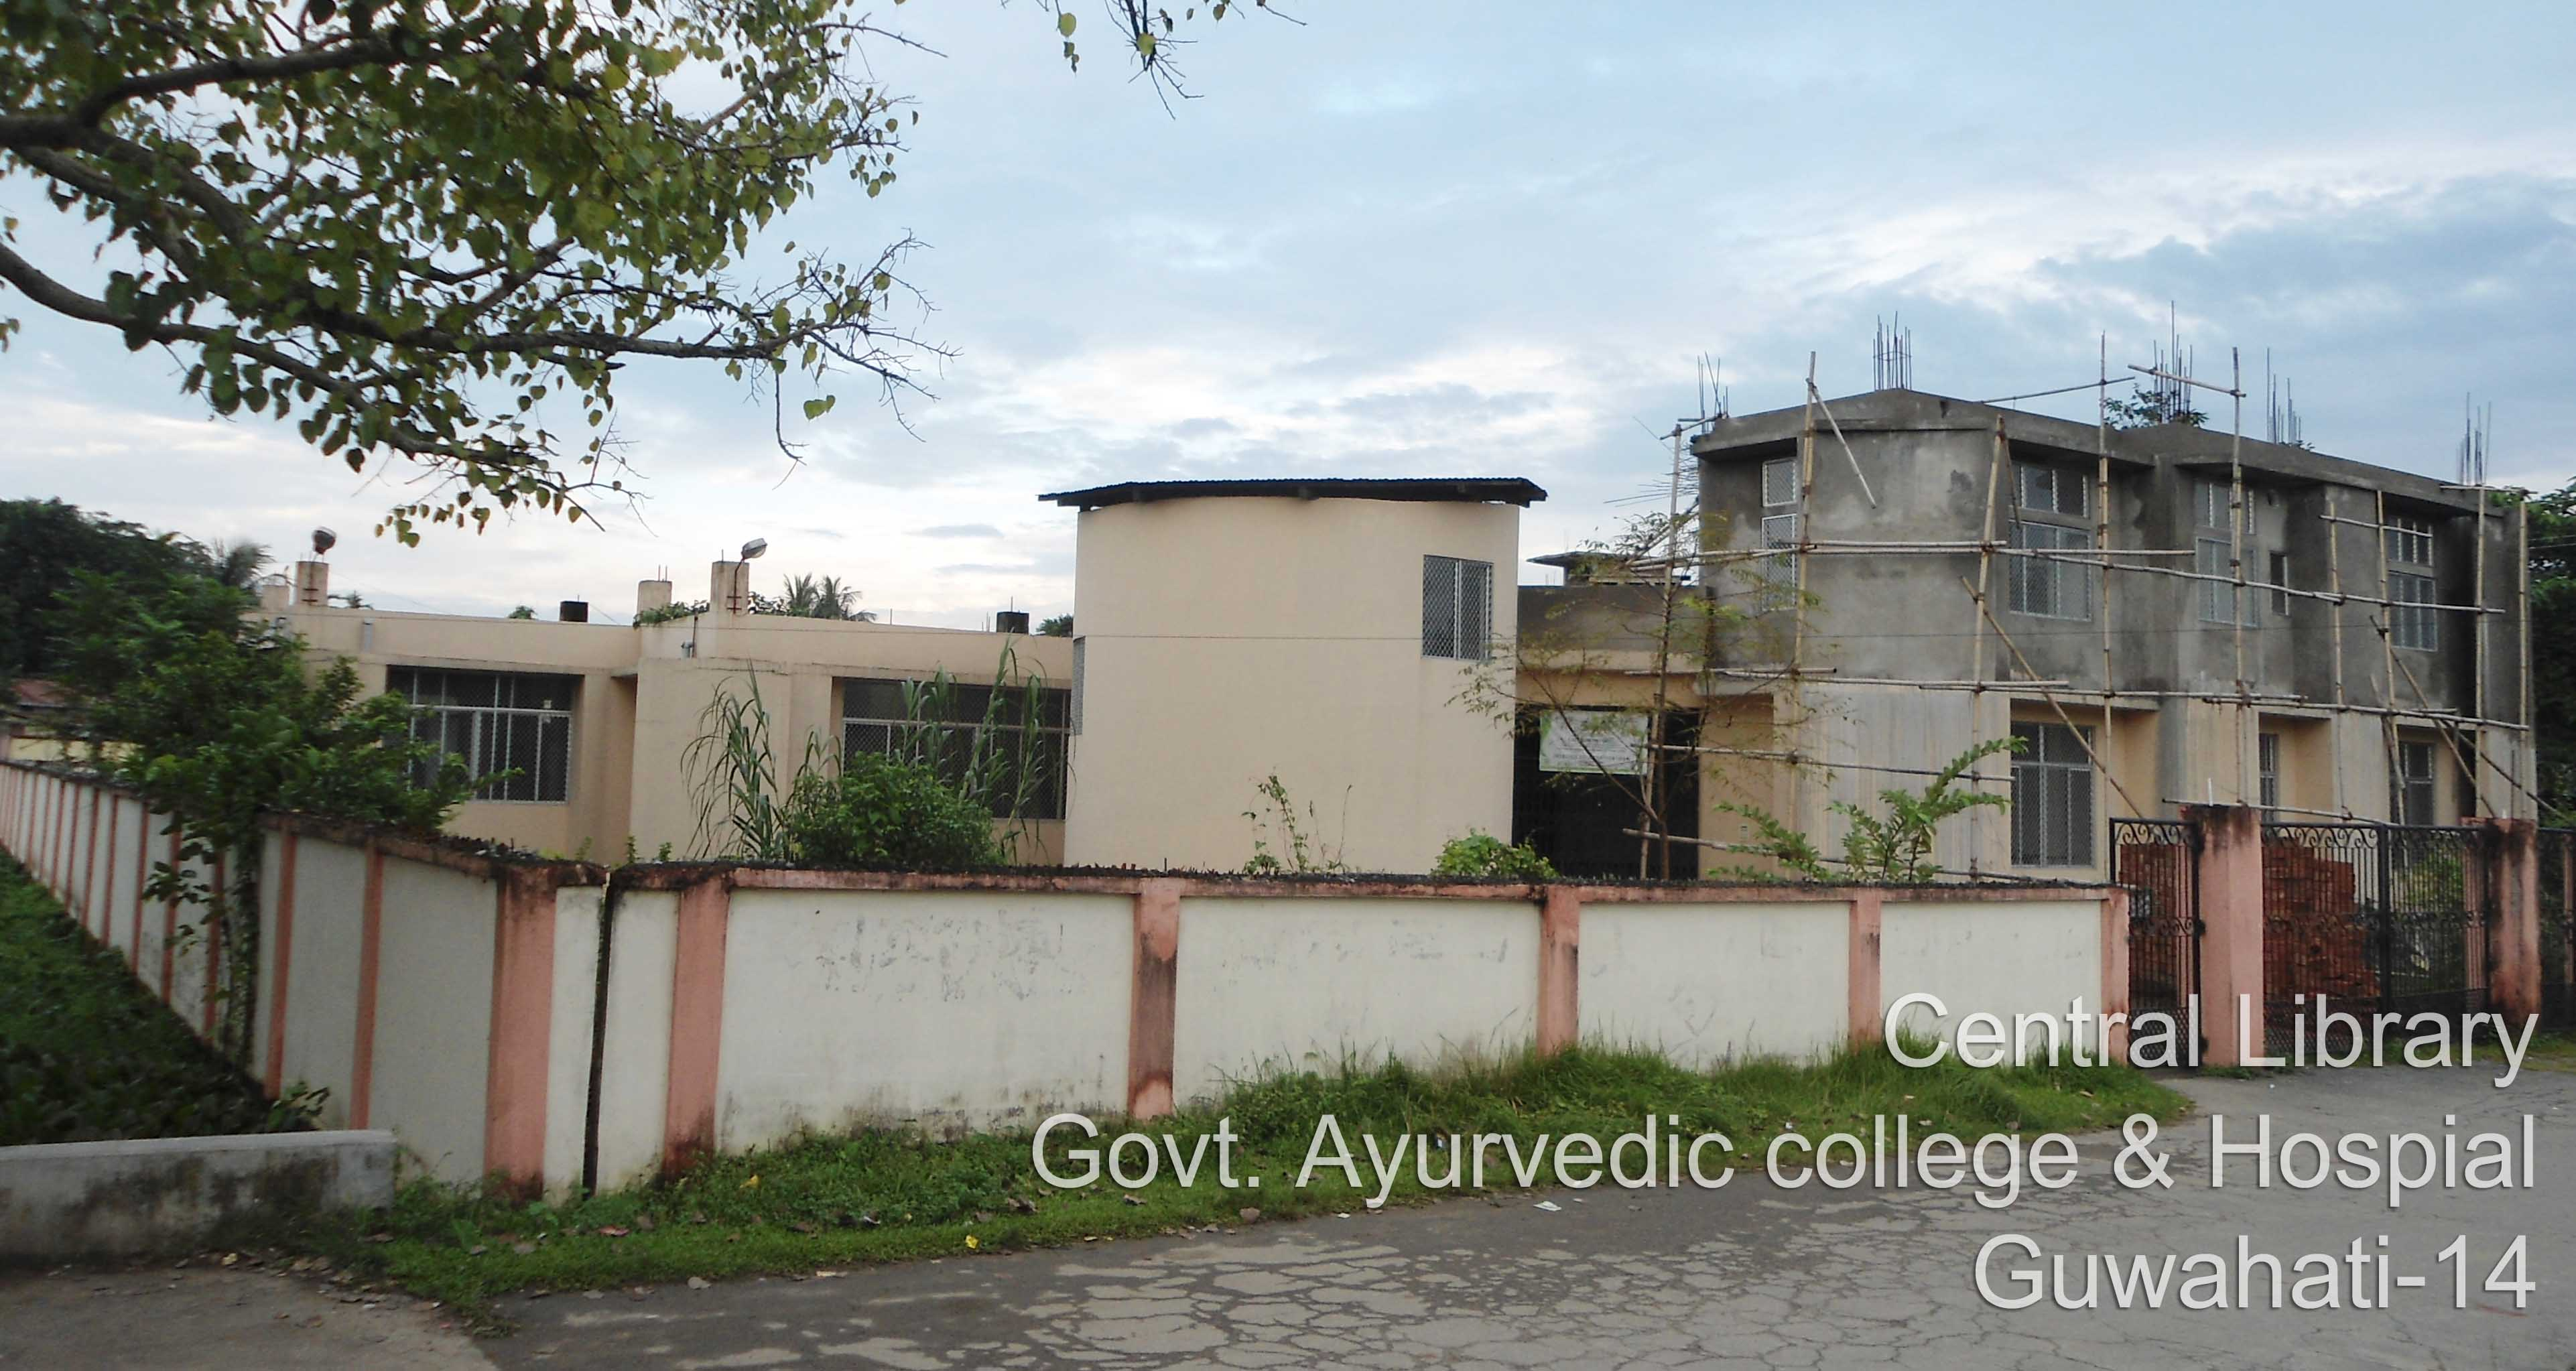 Central library, Govt Ayurvedic College